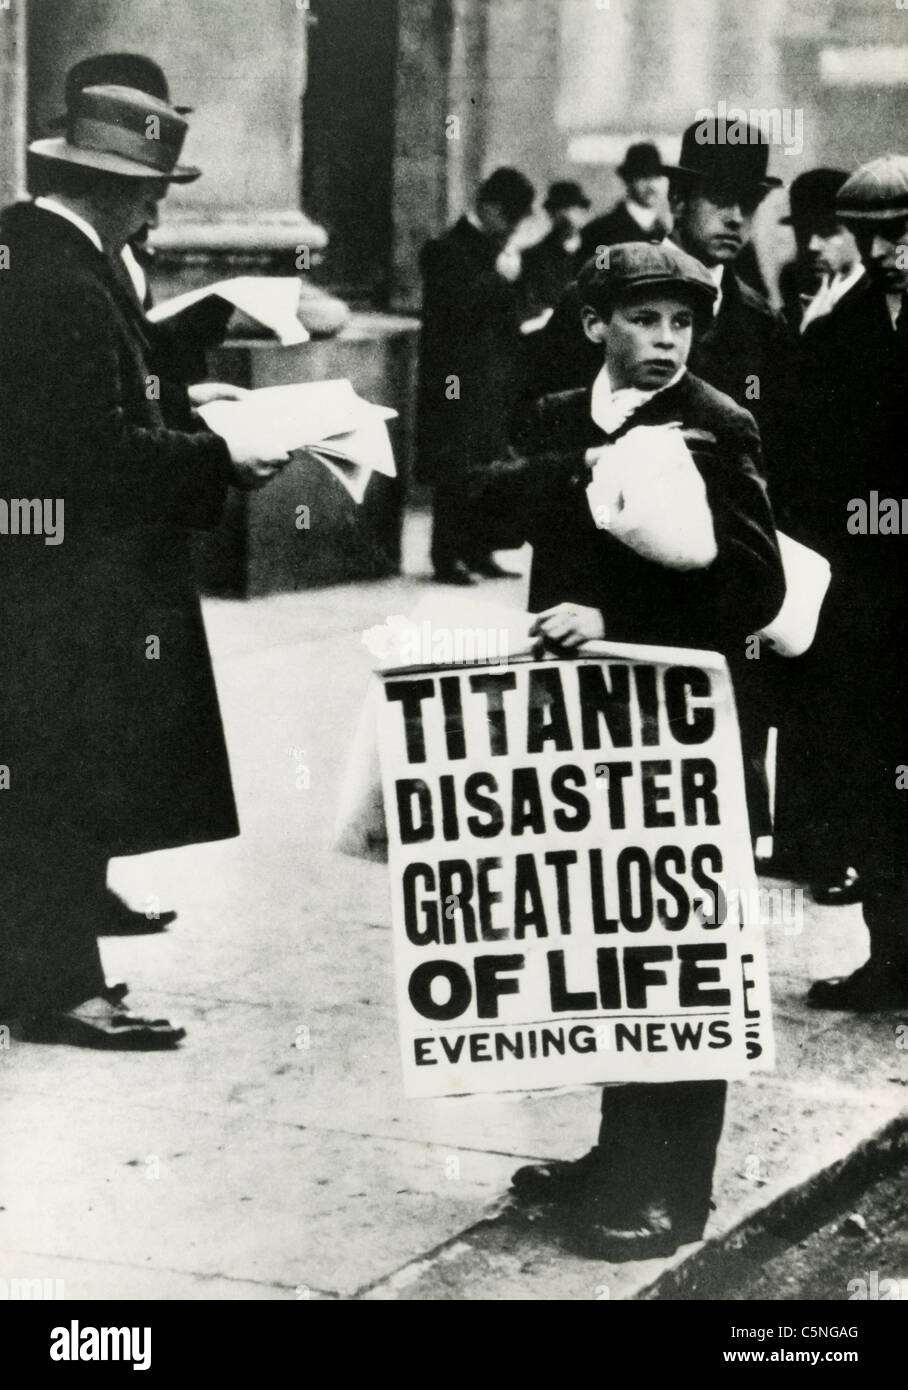 The newsboys announcing the sinking of the ship Titanic, London, 1912 - Stock Image